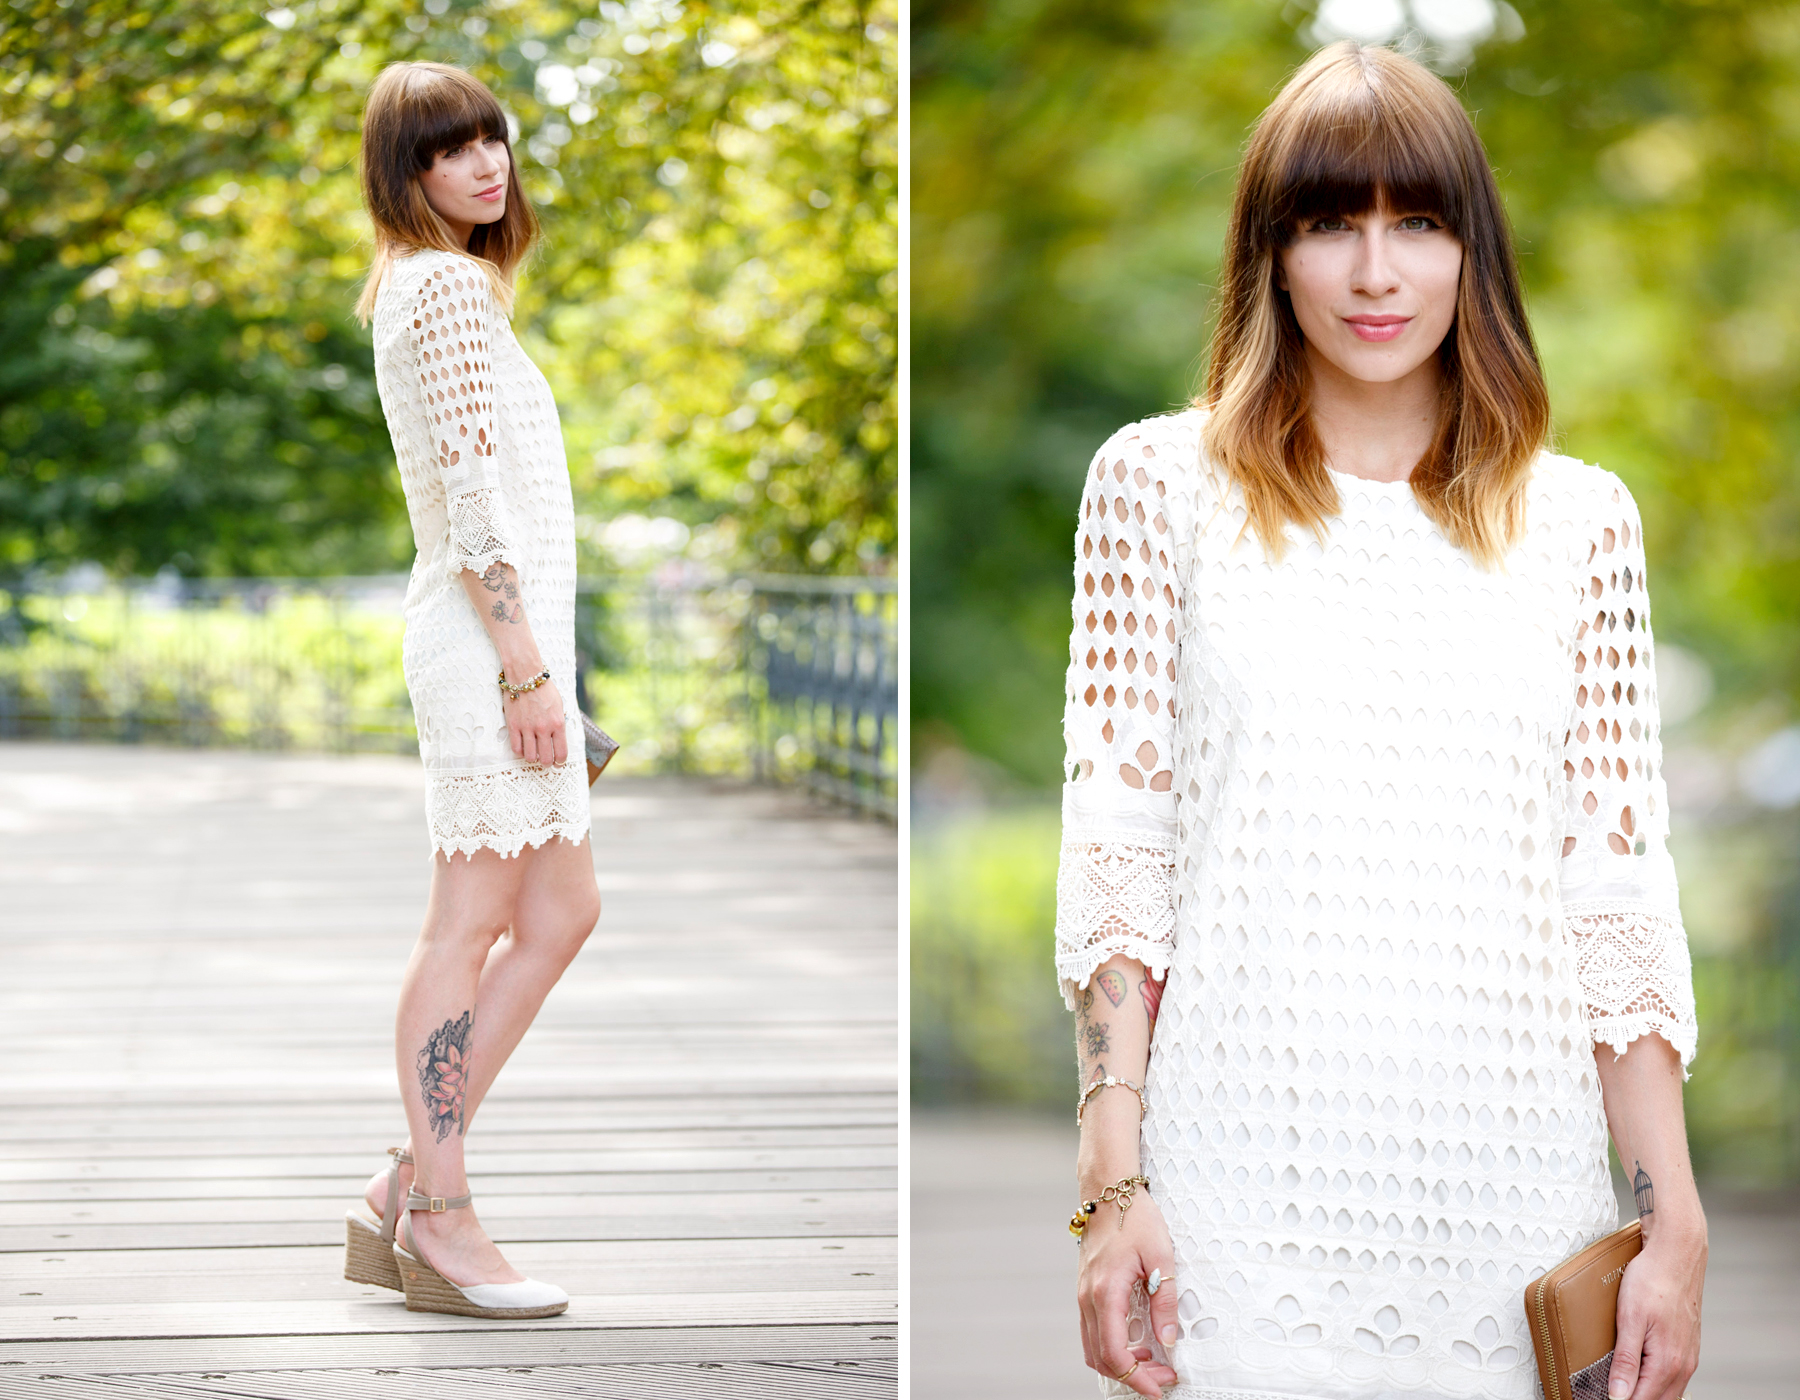 dress-for-less outfit styling white sommerkleid summer look crochet wrangler hilfiger fashion blog germany düsseldorf ricarda schernus cats & dogs 5